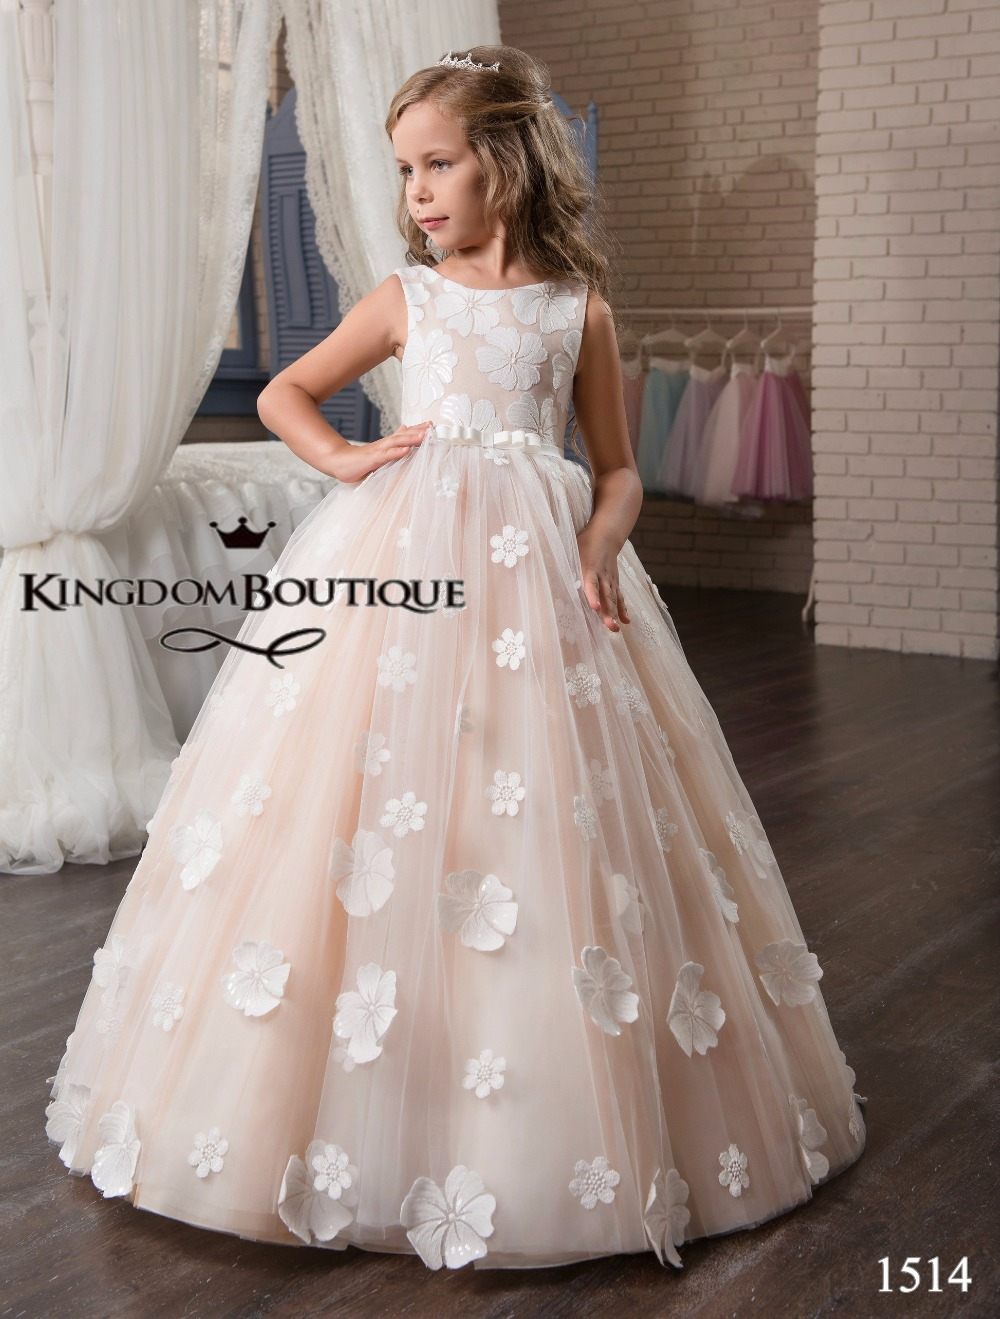 Christmas wedding dress zipper - Facny Floral Flower Girl Dresses Holy Communion Pink Sleeveless V Zipper Back Floor Length Appliques Christmas